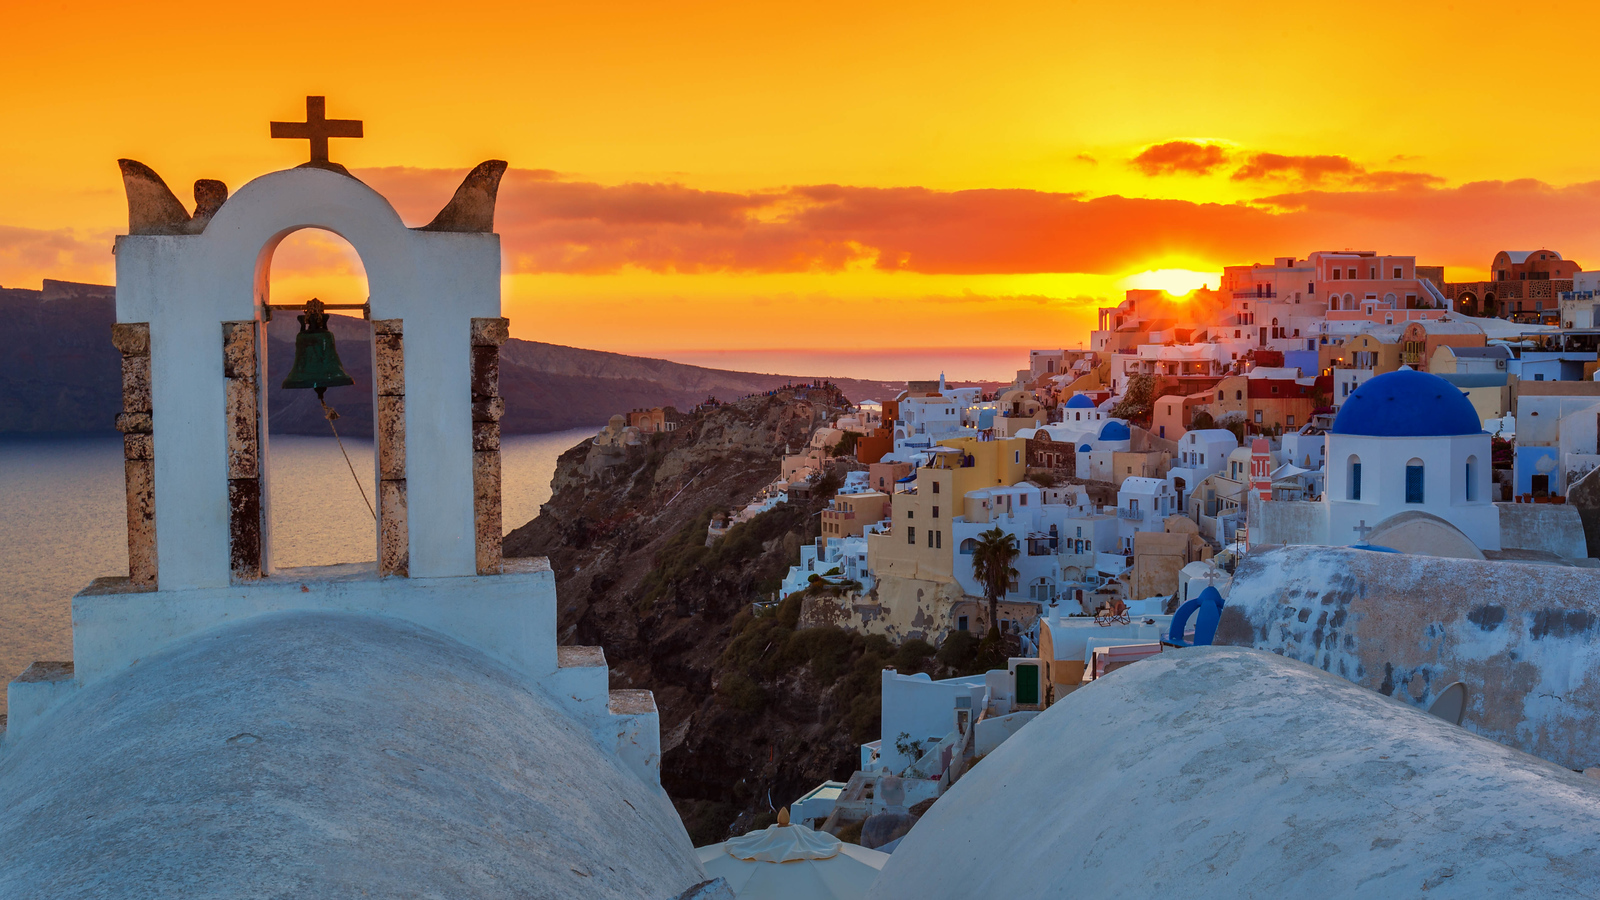 Sunset is magical from Oia in Santorini.